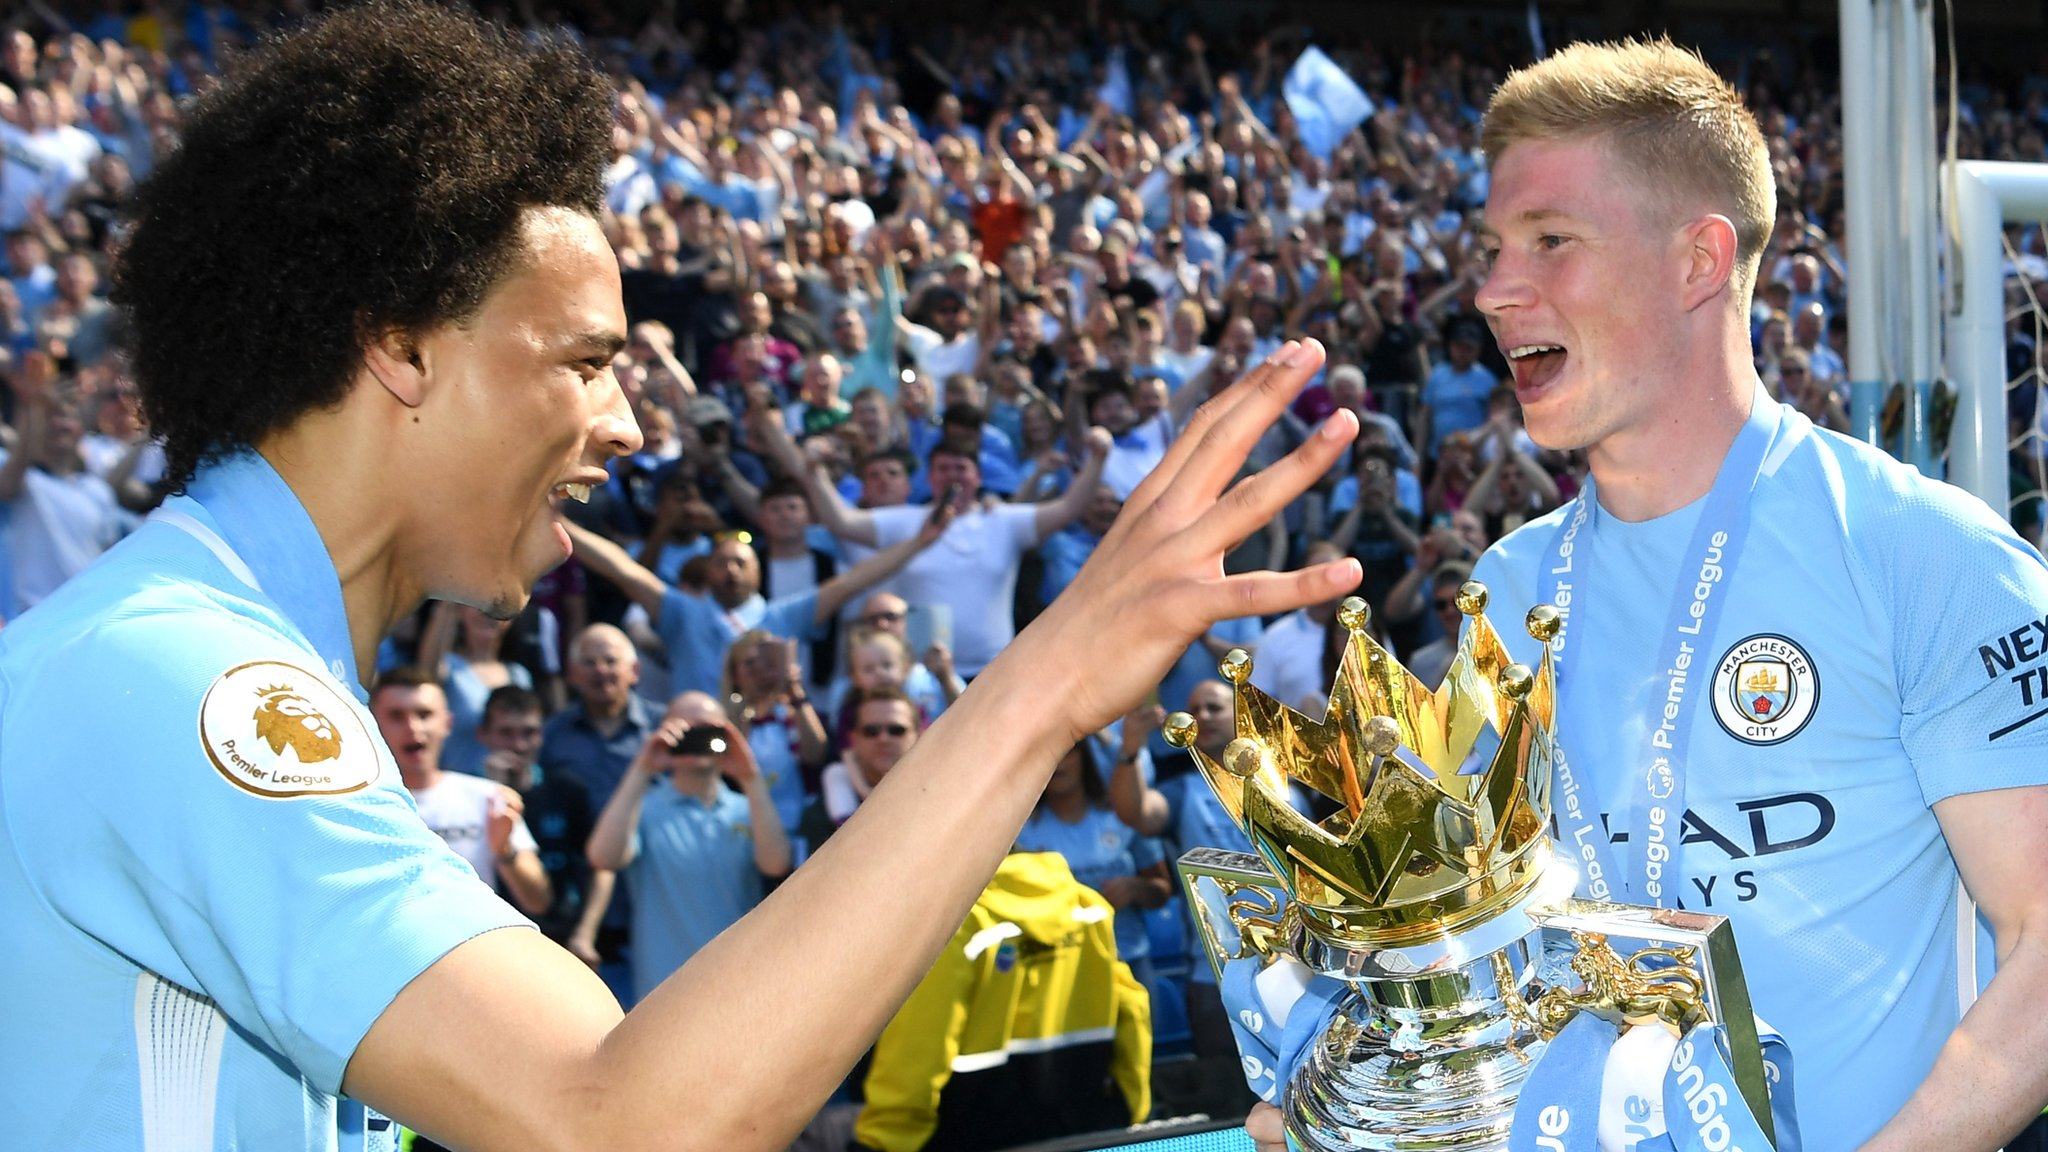 'Last year was almost perfect' - De Bruyne on the title, Guardiola & City's behind-the-scenes doc